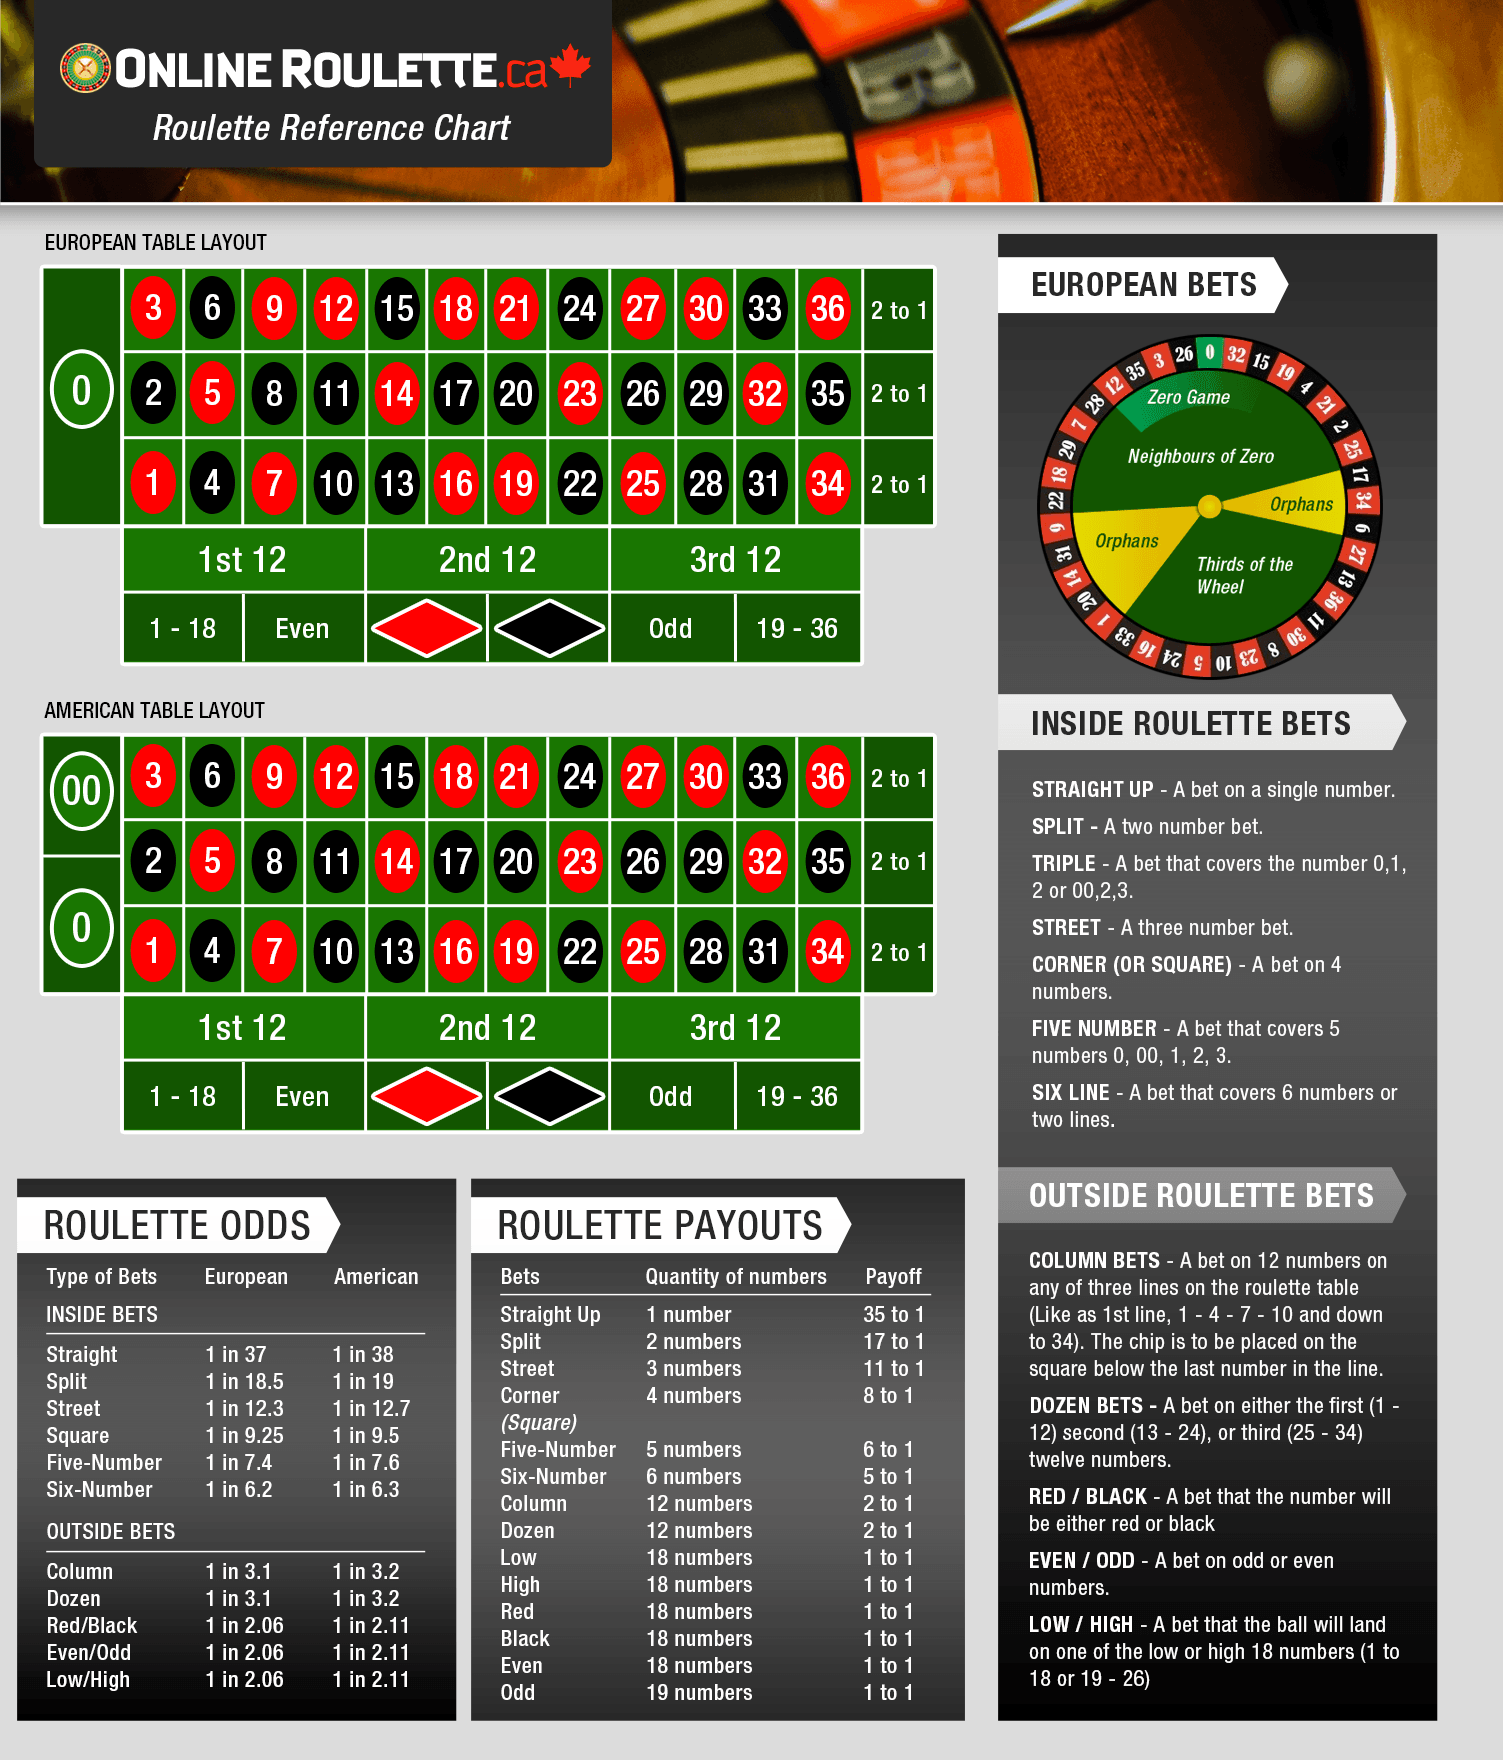 Fisher roulette software download restaurant cabourg casino